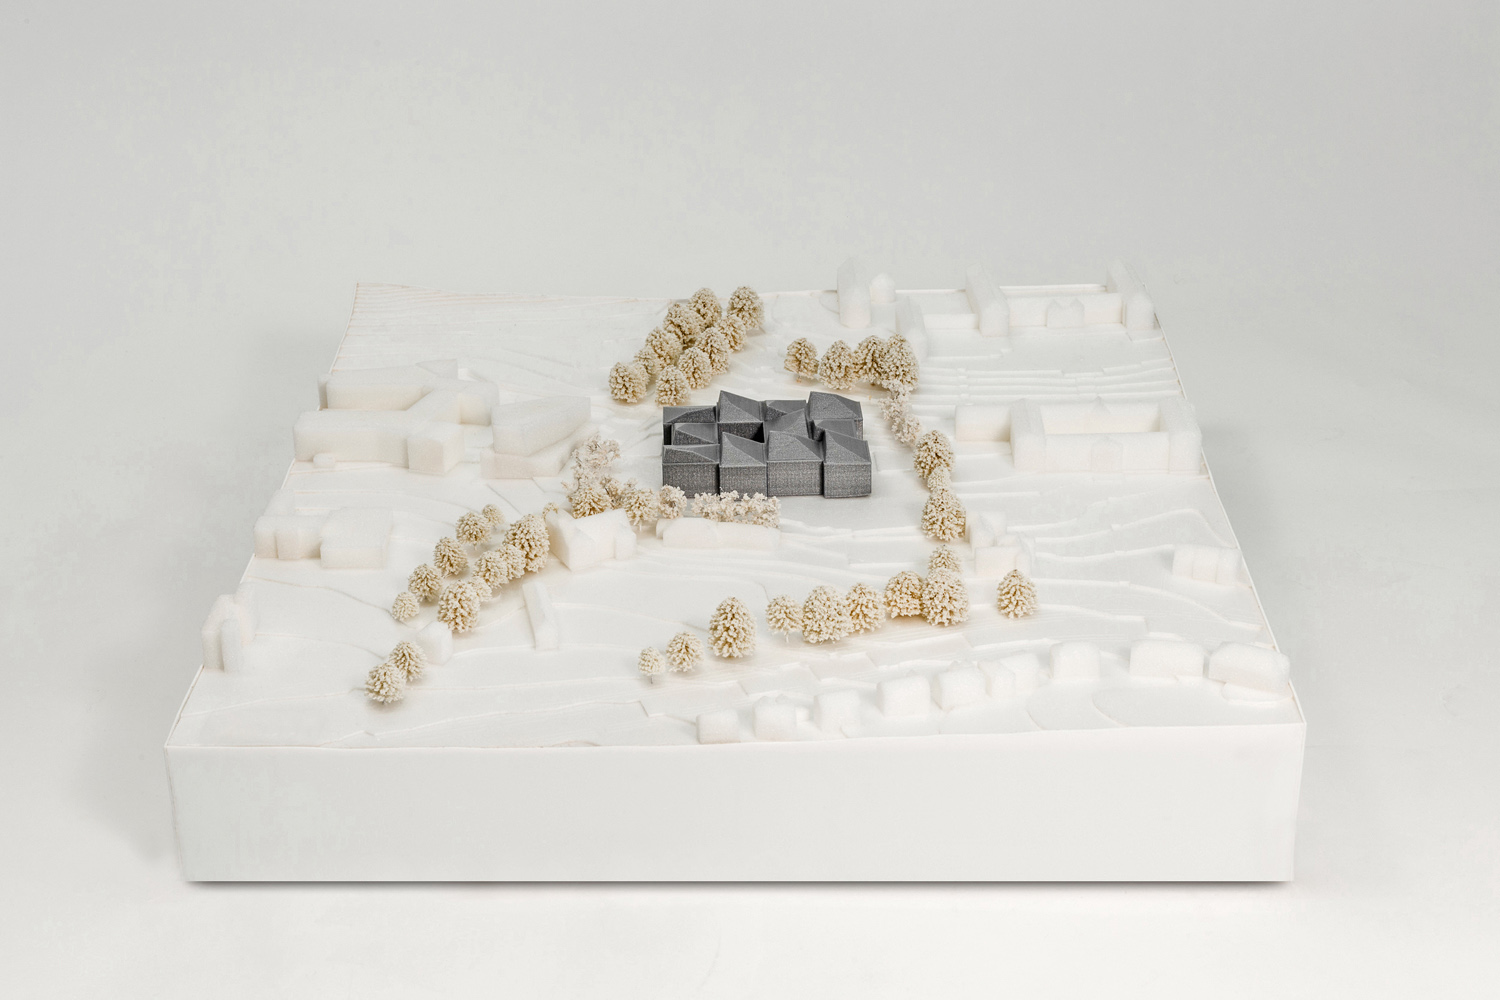 Concept Model FaulknerBrowns Architects}